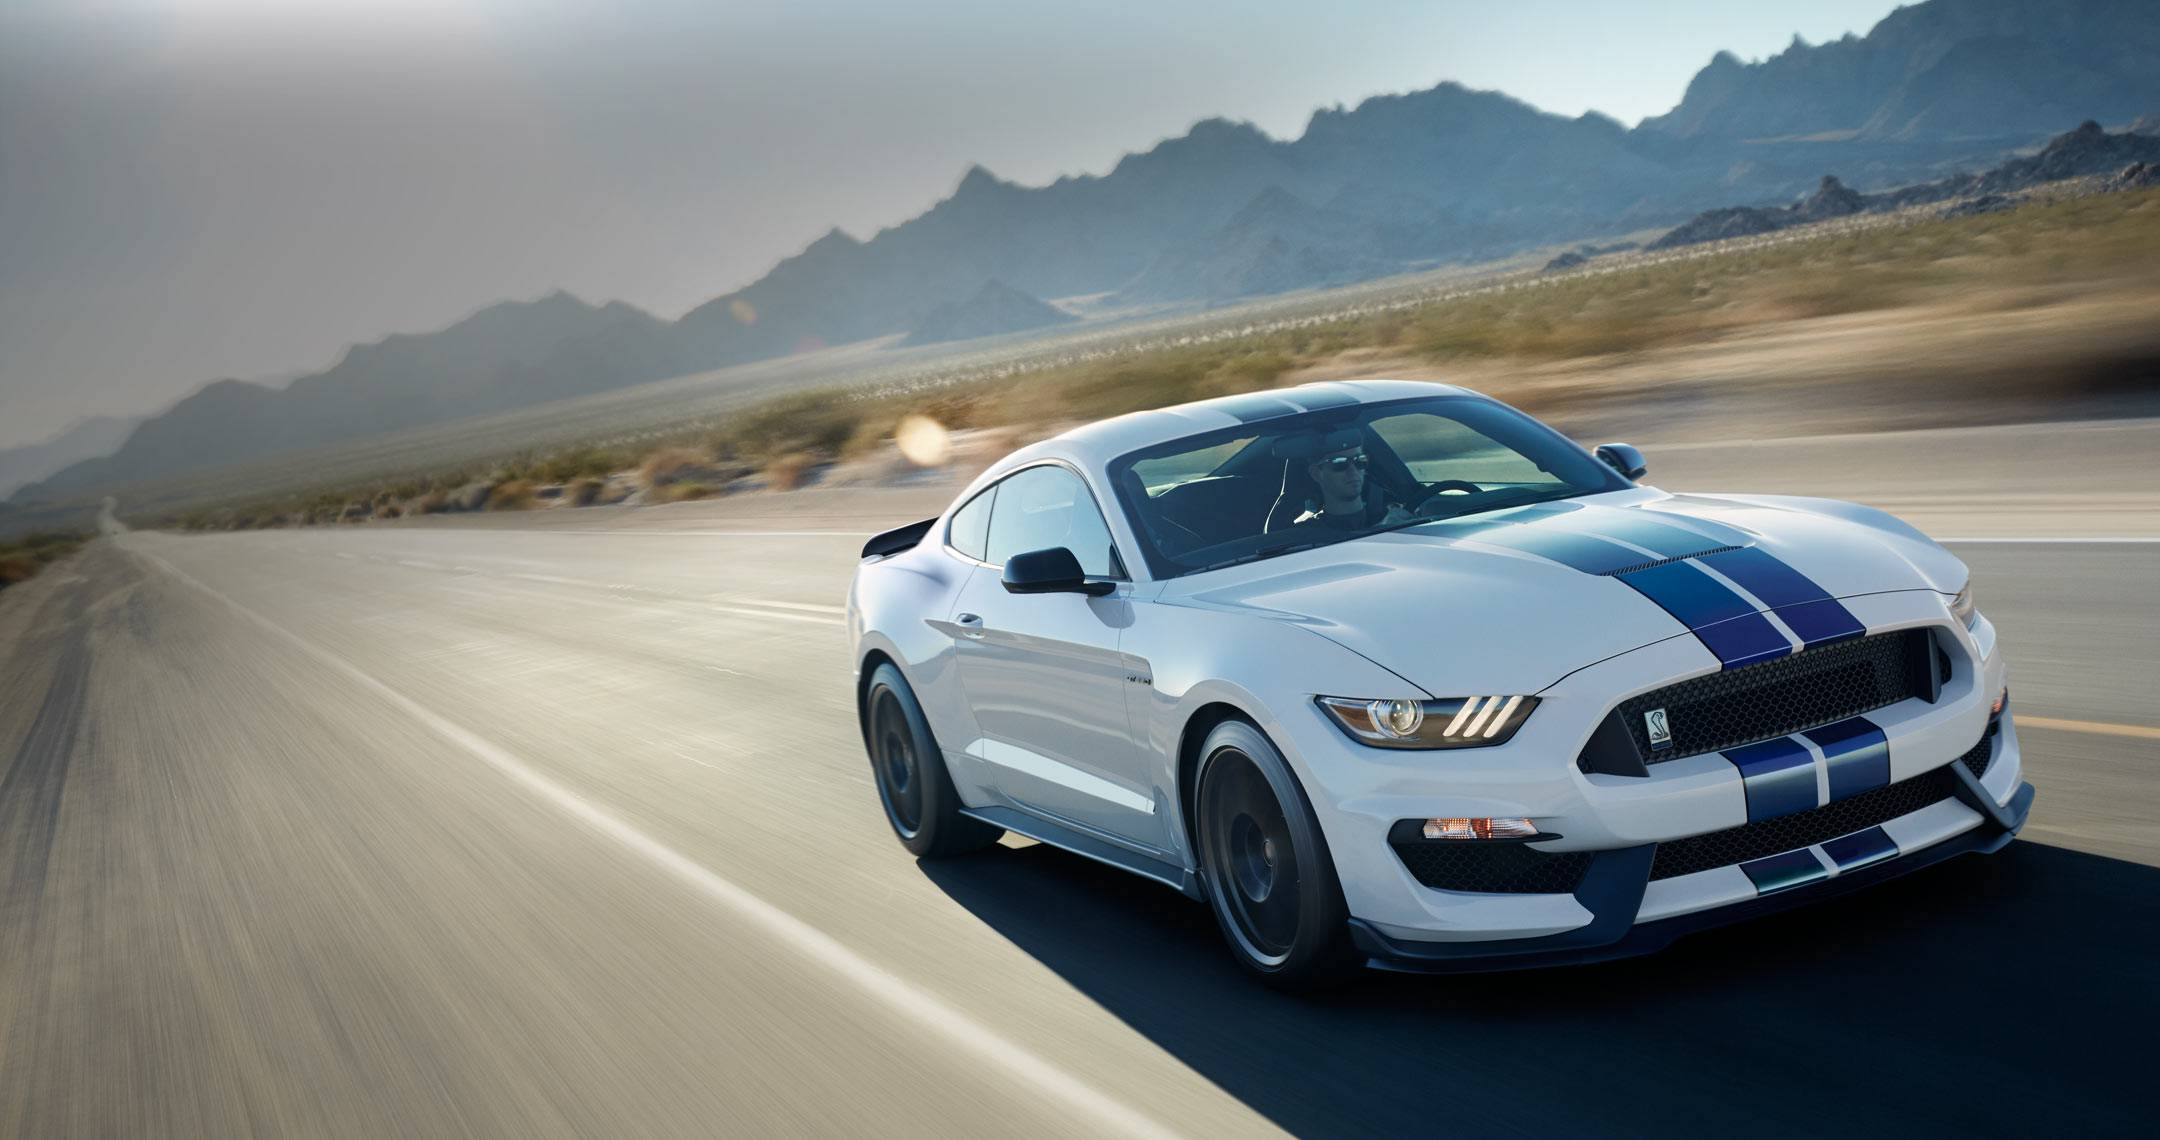 Ford Mustang Shelby GT350 Lease Deals & Price - Zelienople PA